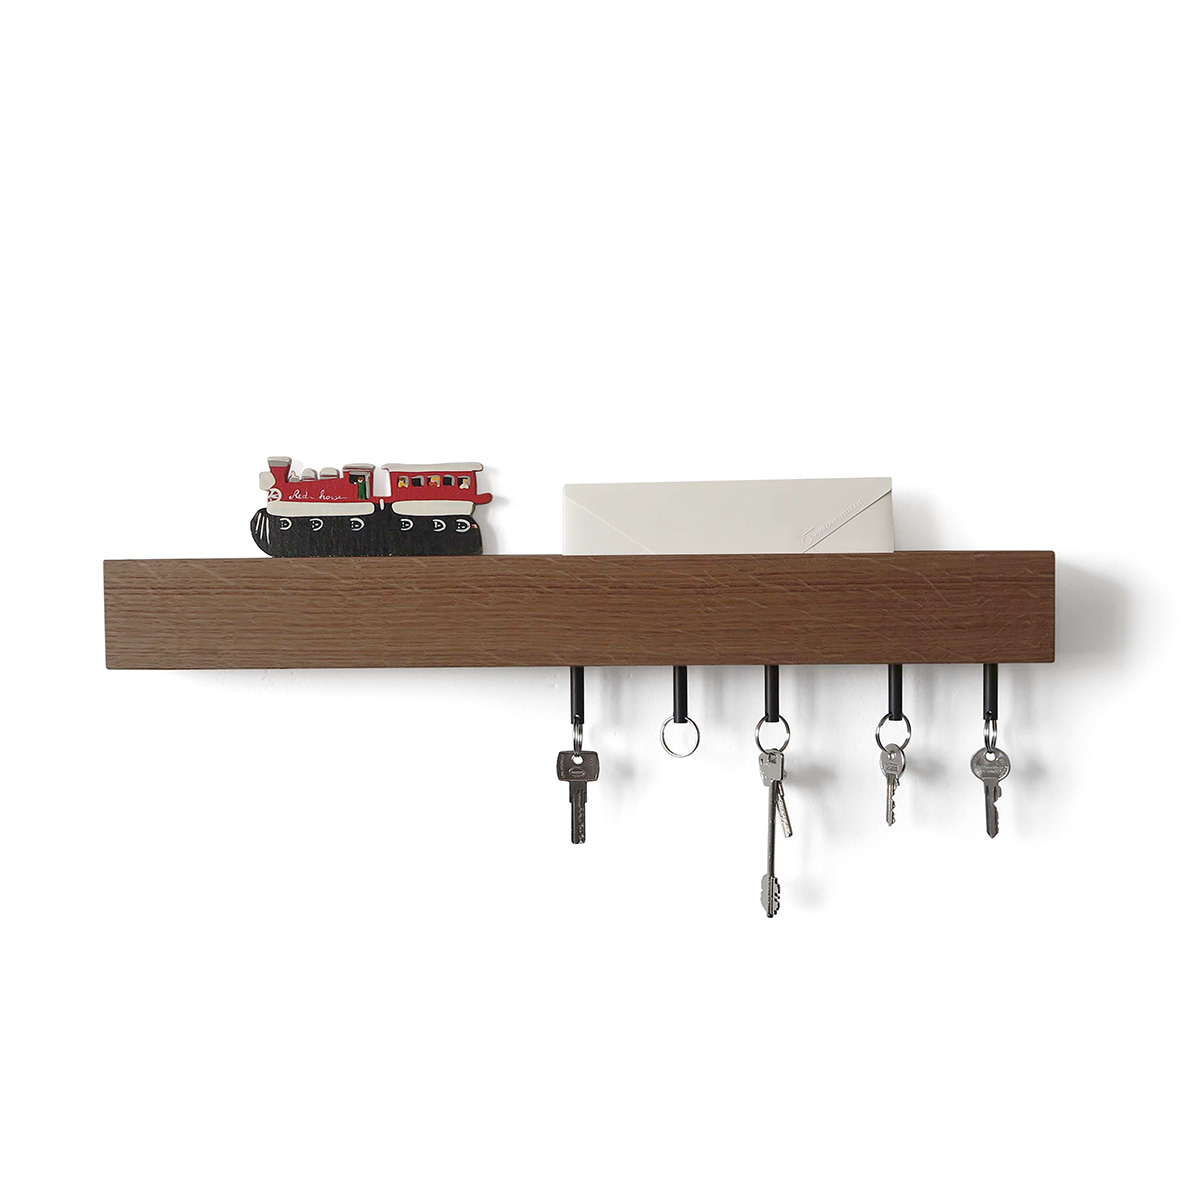 portachiavi-muro-design-wall-key-mail-holder-designobject-big-dark